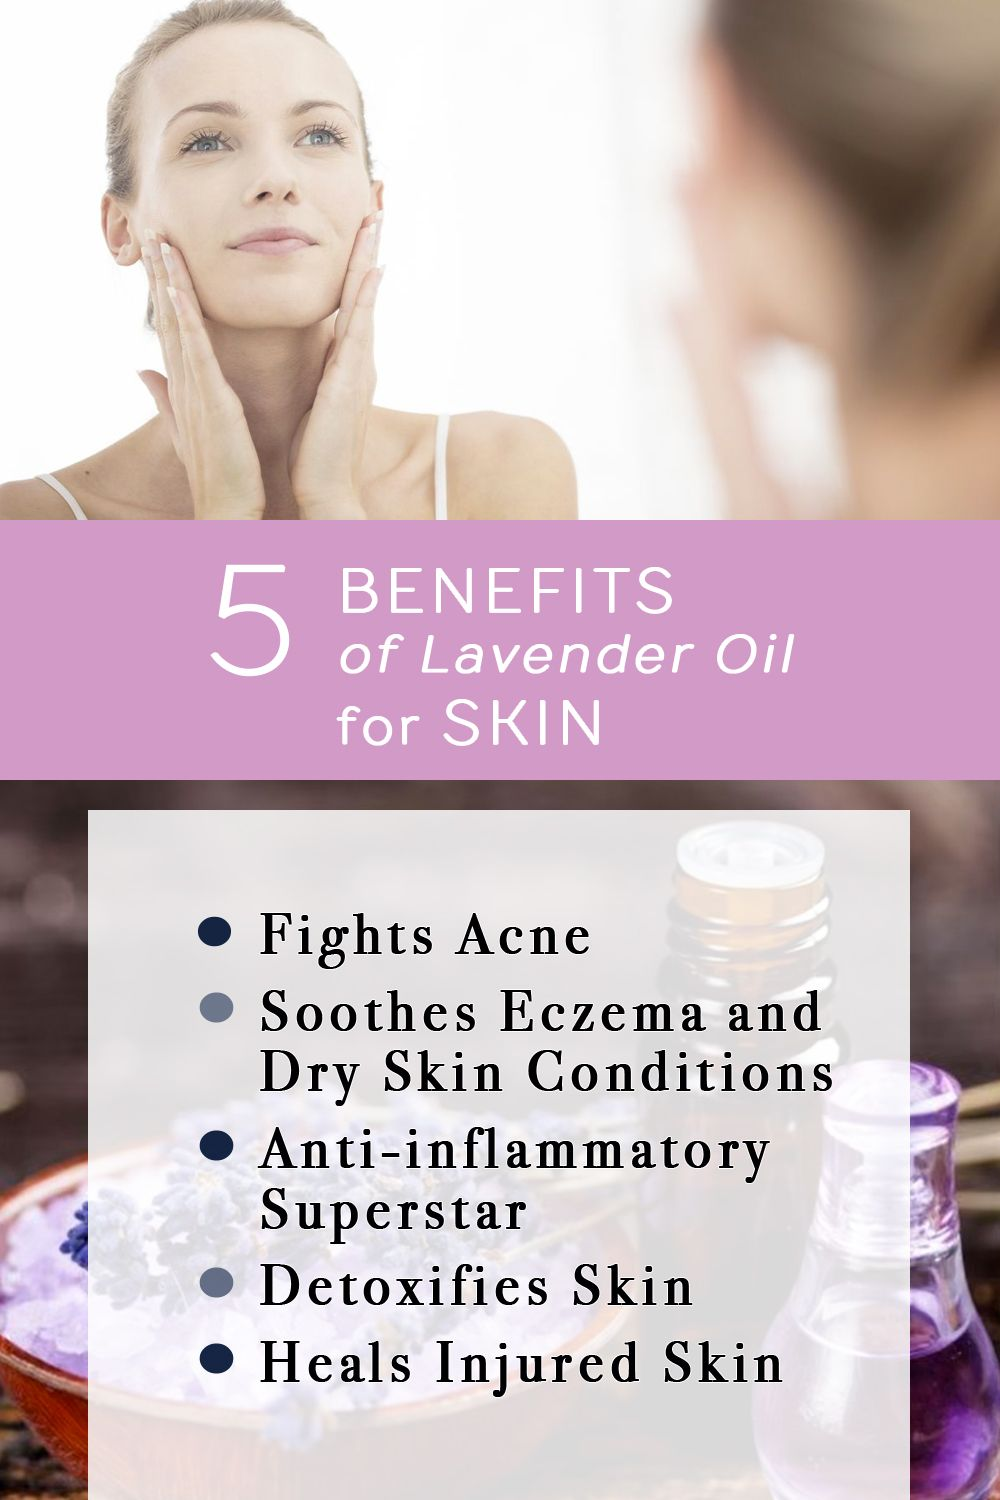 Top 10 Benefits Of Lavender Essential Oil Lavender Oil For Skin Lavender Benefits Oils For Skin